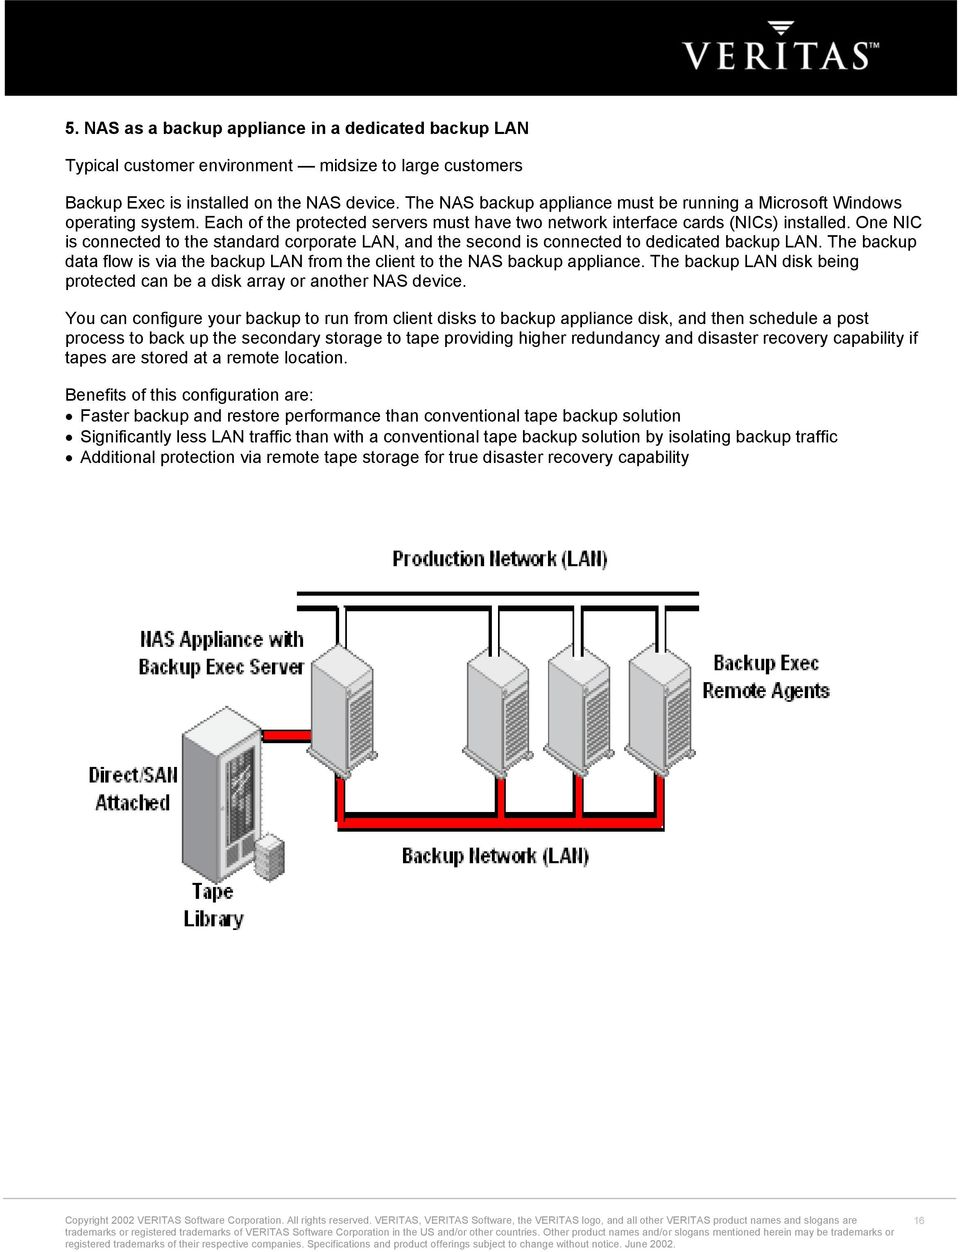 One NIC is connected to the standard corporate LAN, and the second is connected to dedicated backup LAN. The backup data flow is via the backup LAN from the client to the NAS backup appliance.